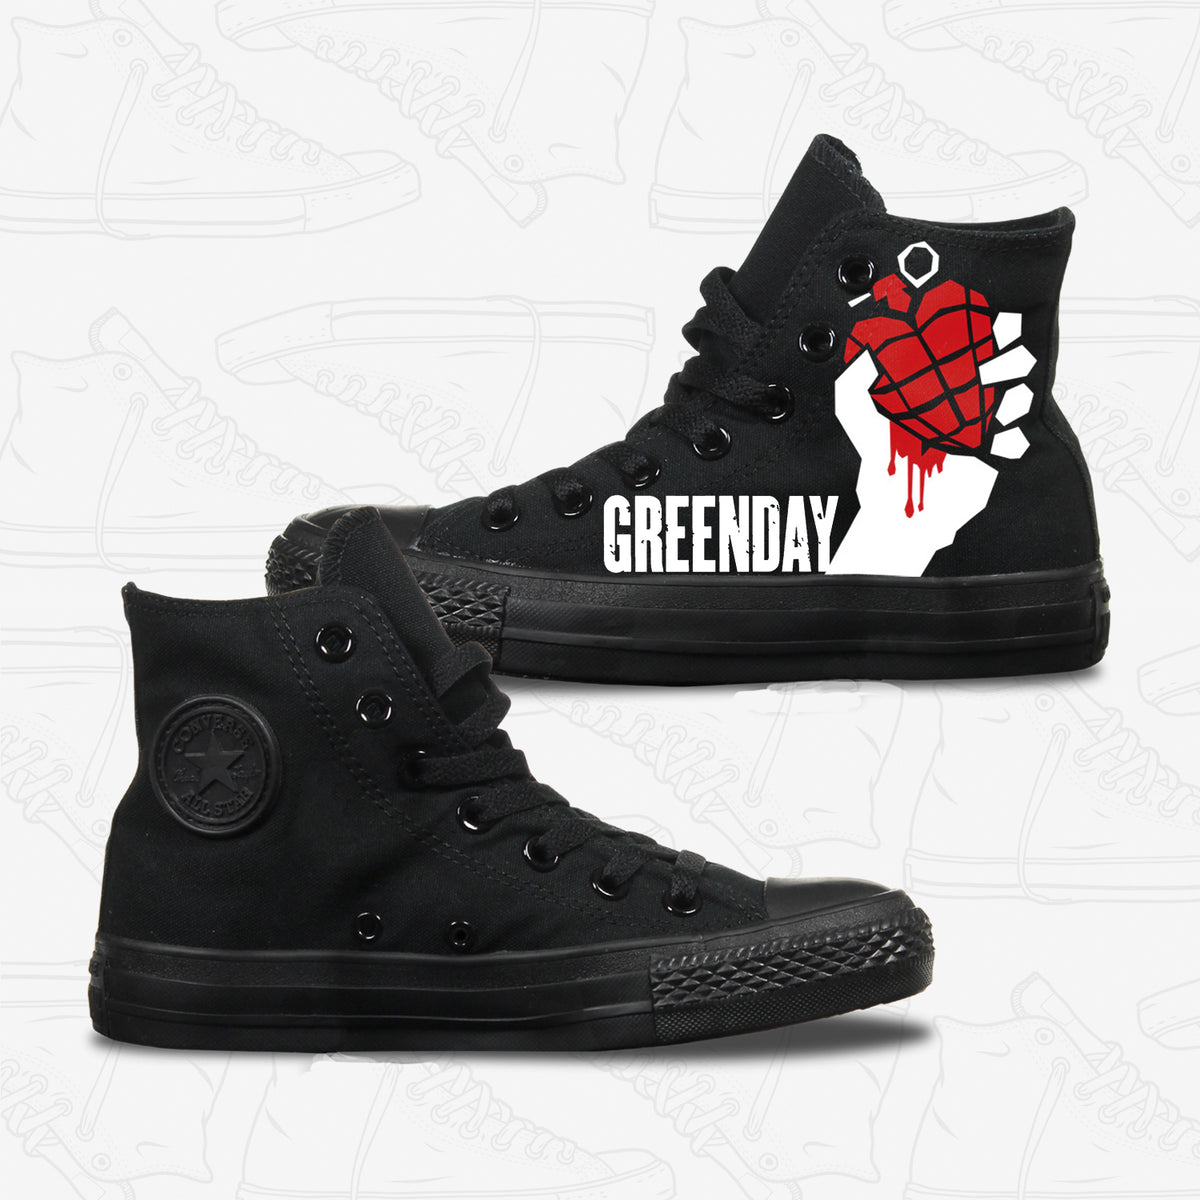 Green Day Adult Converse Shoes